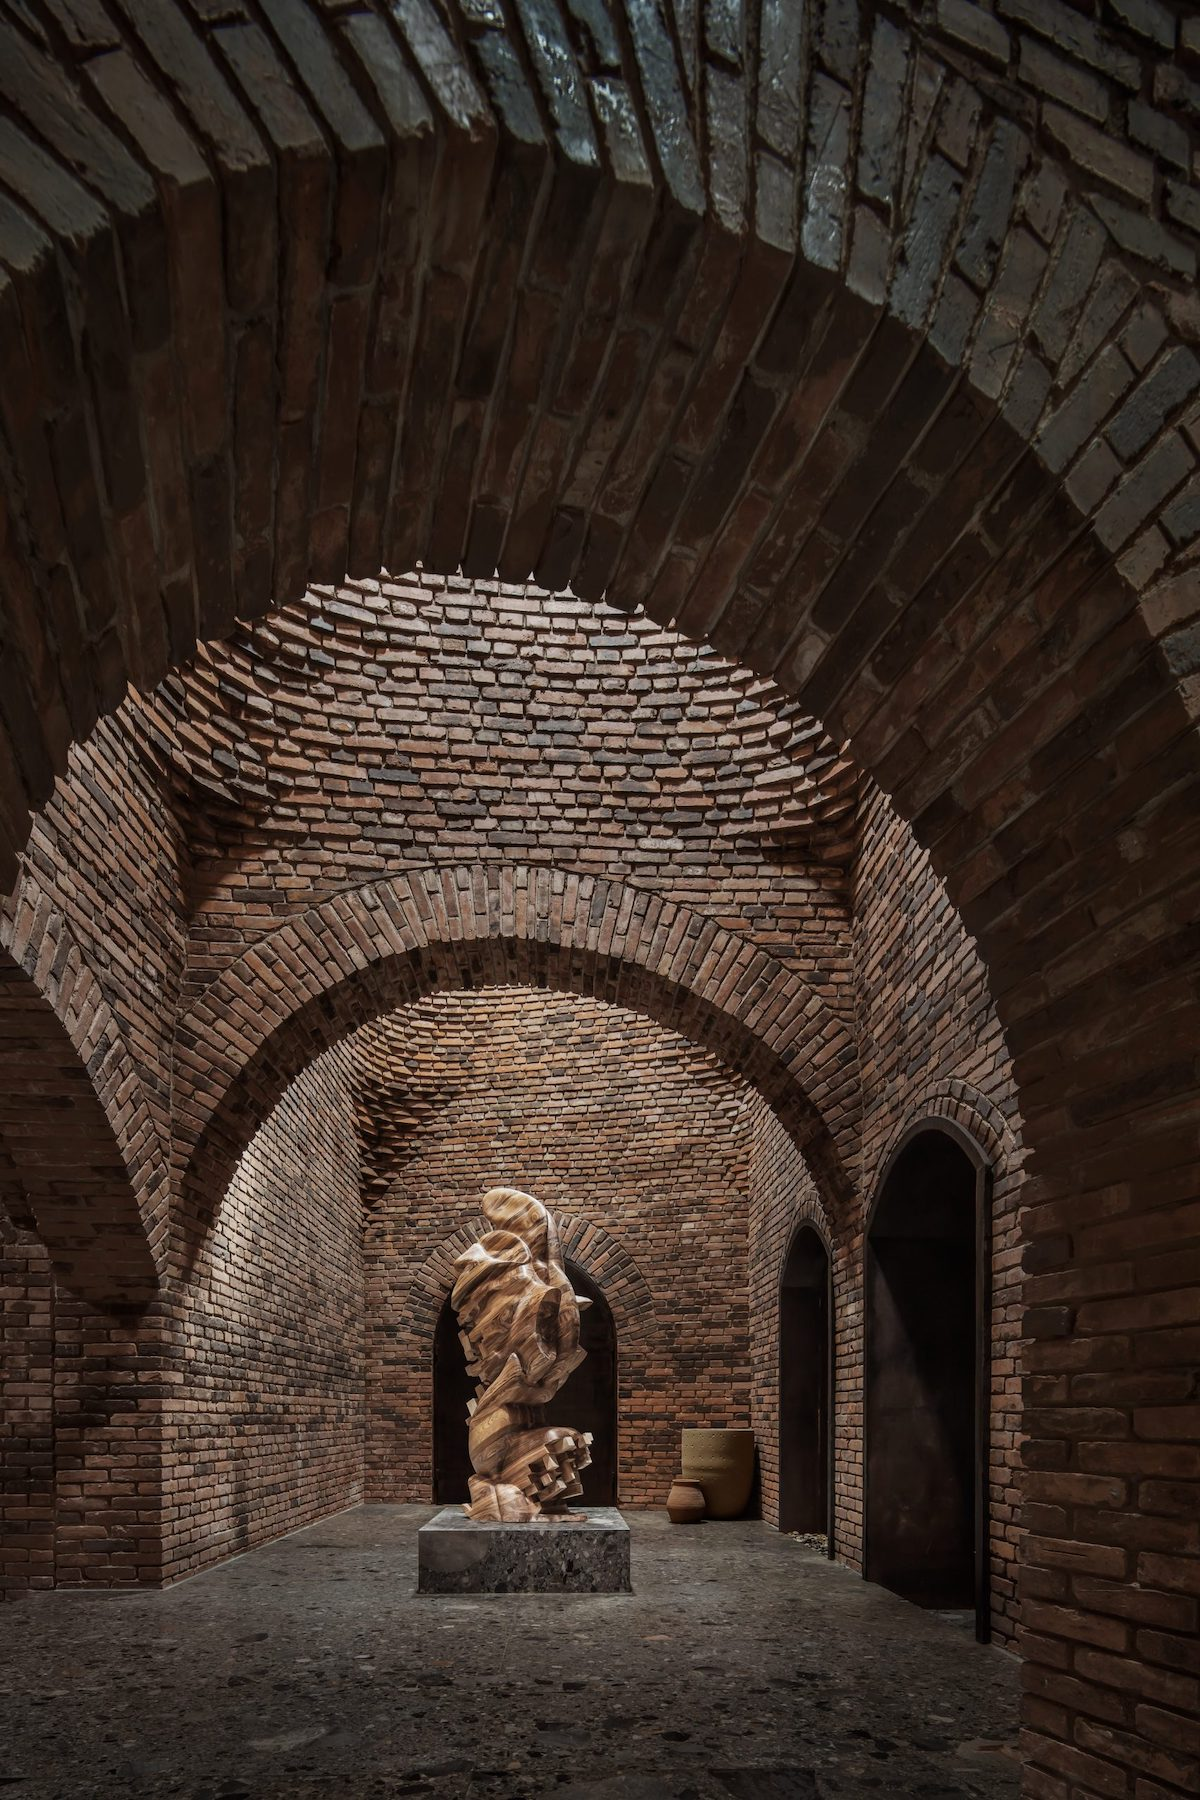 Brick Interior With Abstract Sculpture in the Middle